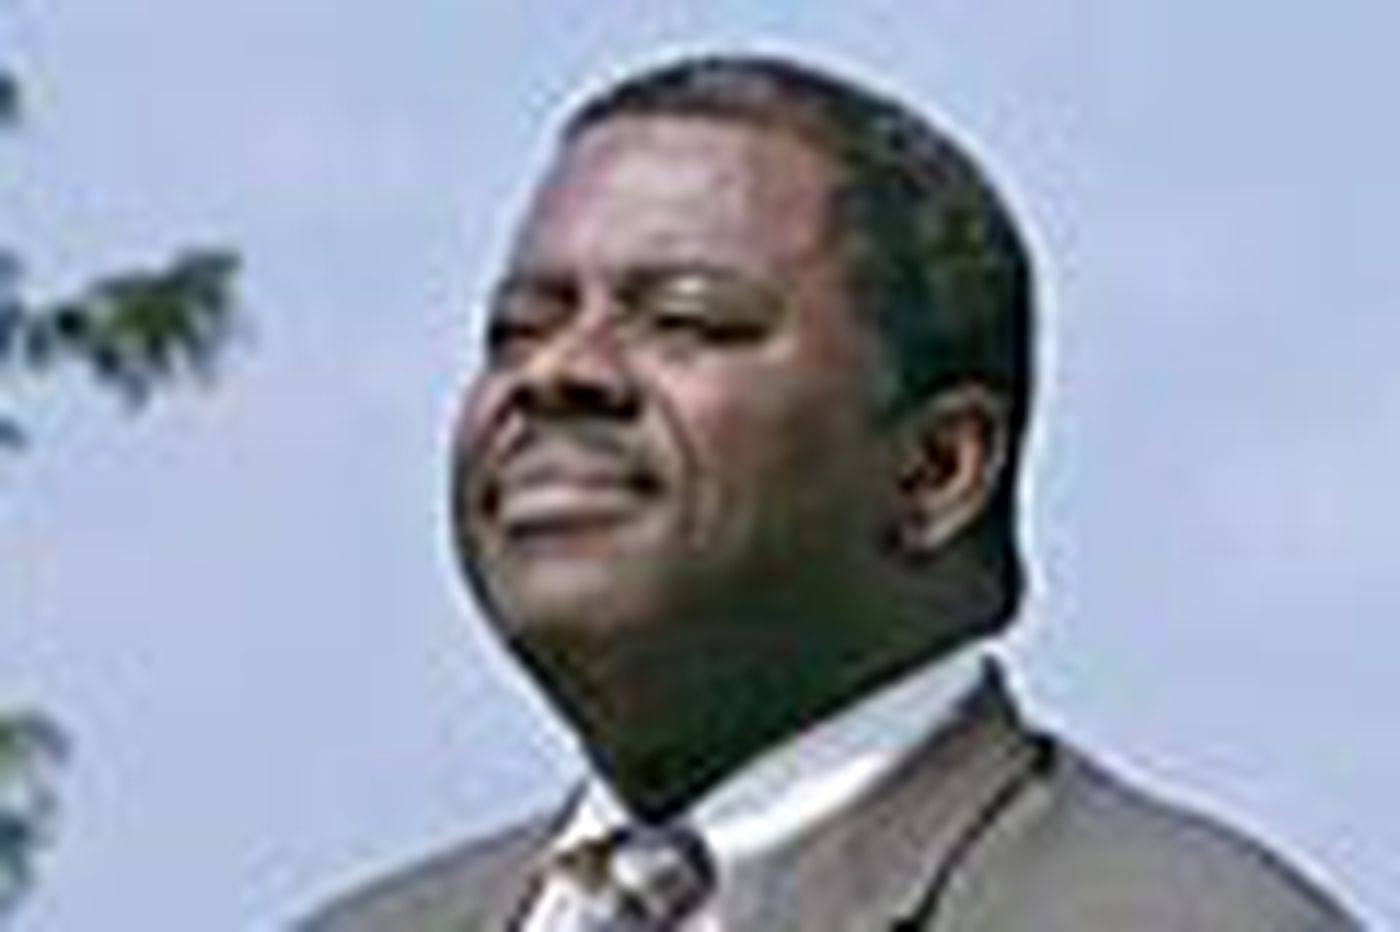 Two more women say PHA director Carl Greene harassed them